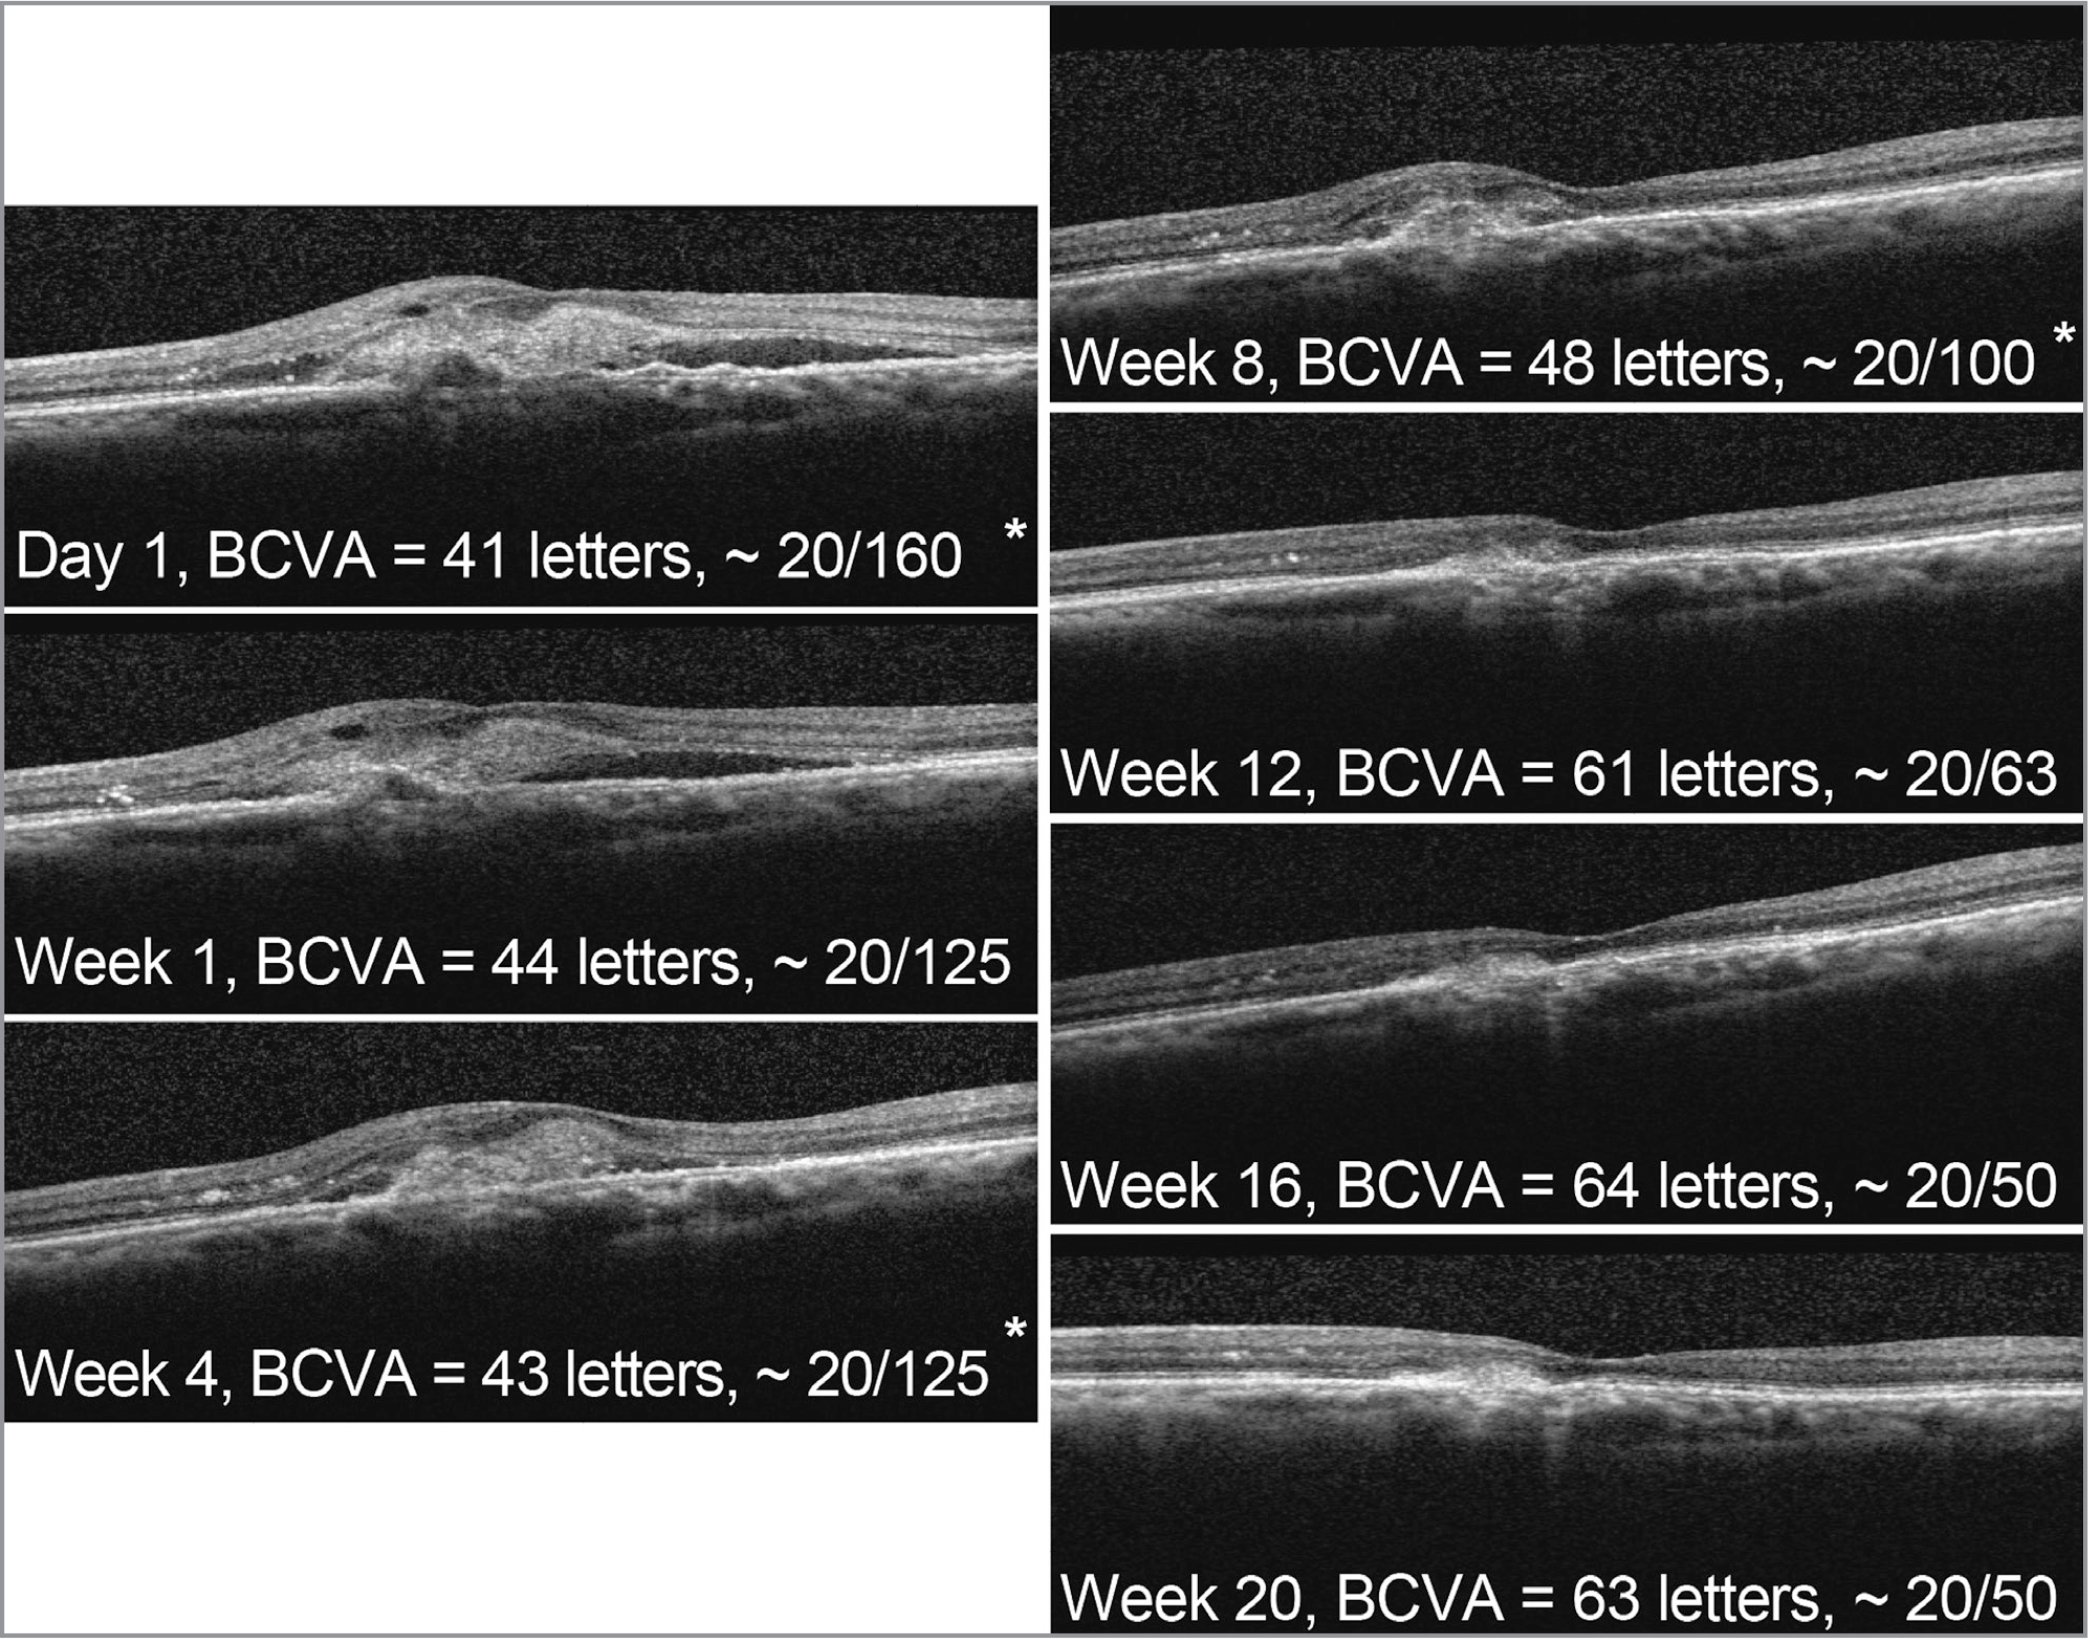 Spectral-domain optical coherence tomography images and best-corrected visual acuity (BCVA) in a 77-year-old Japanese male with neovascular age-related macular degeneration and polypoidal choroidal vasculopathy in the left eye treated with abicipar 2 mg in the BAMBOO study. Asterisk indicates visit with abicipar intravitreal injection (baseline, week 4, and week 8).